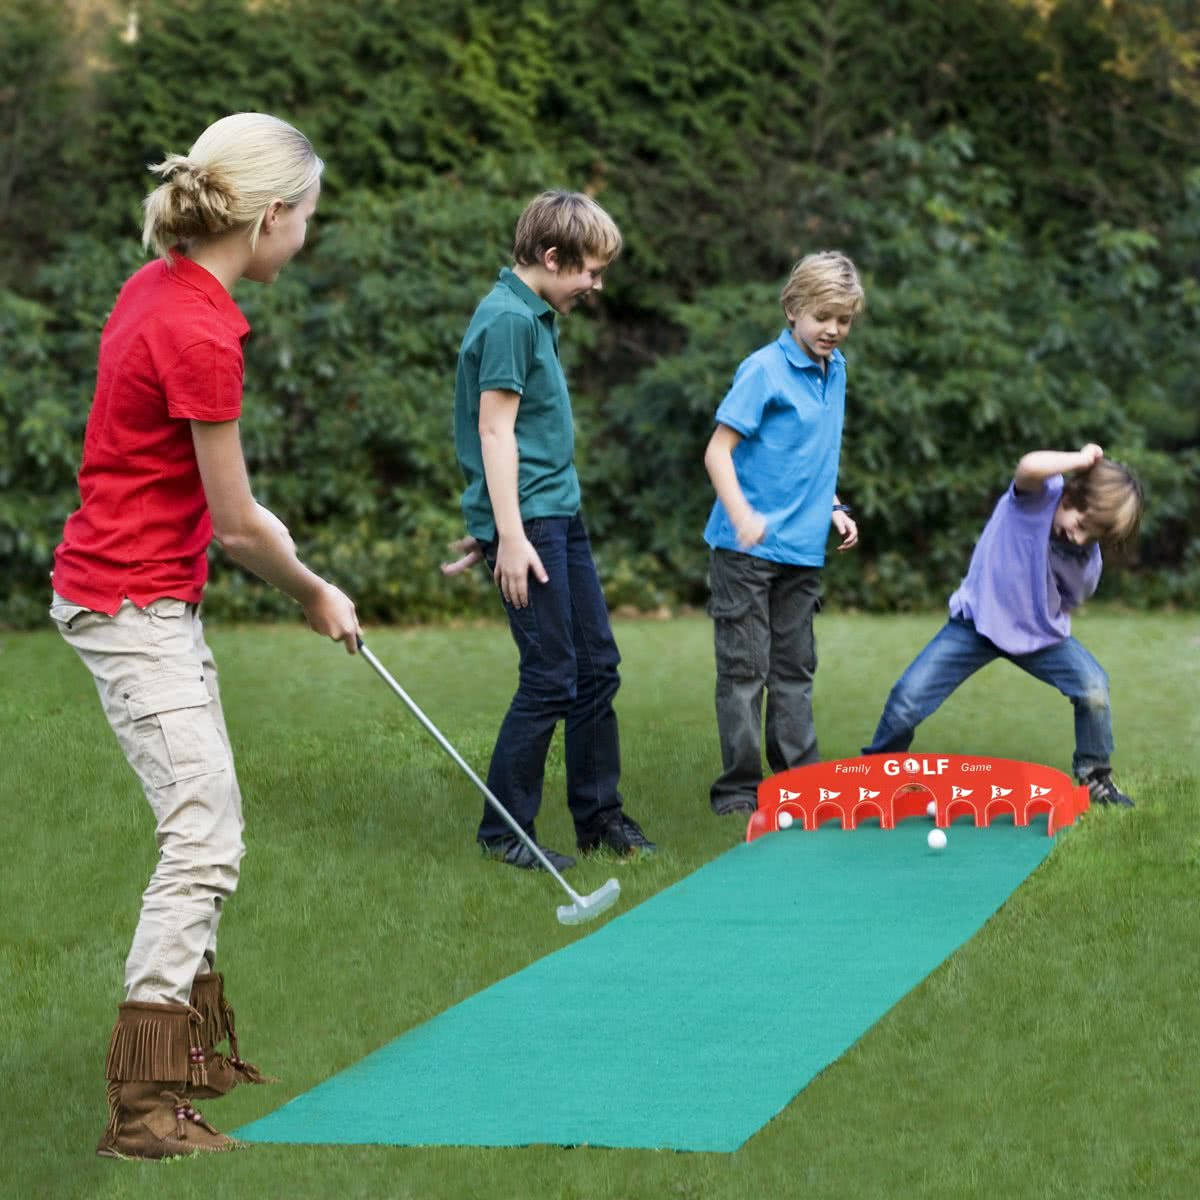 Family Golf Spel Golfset